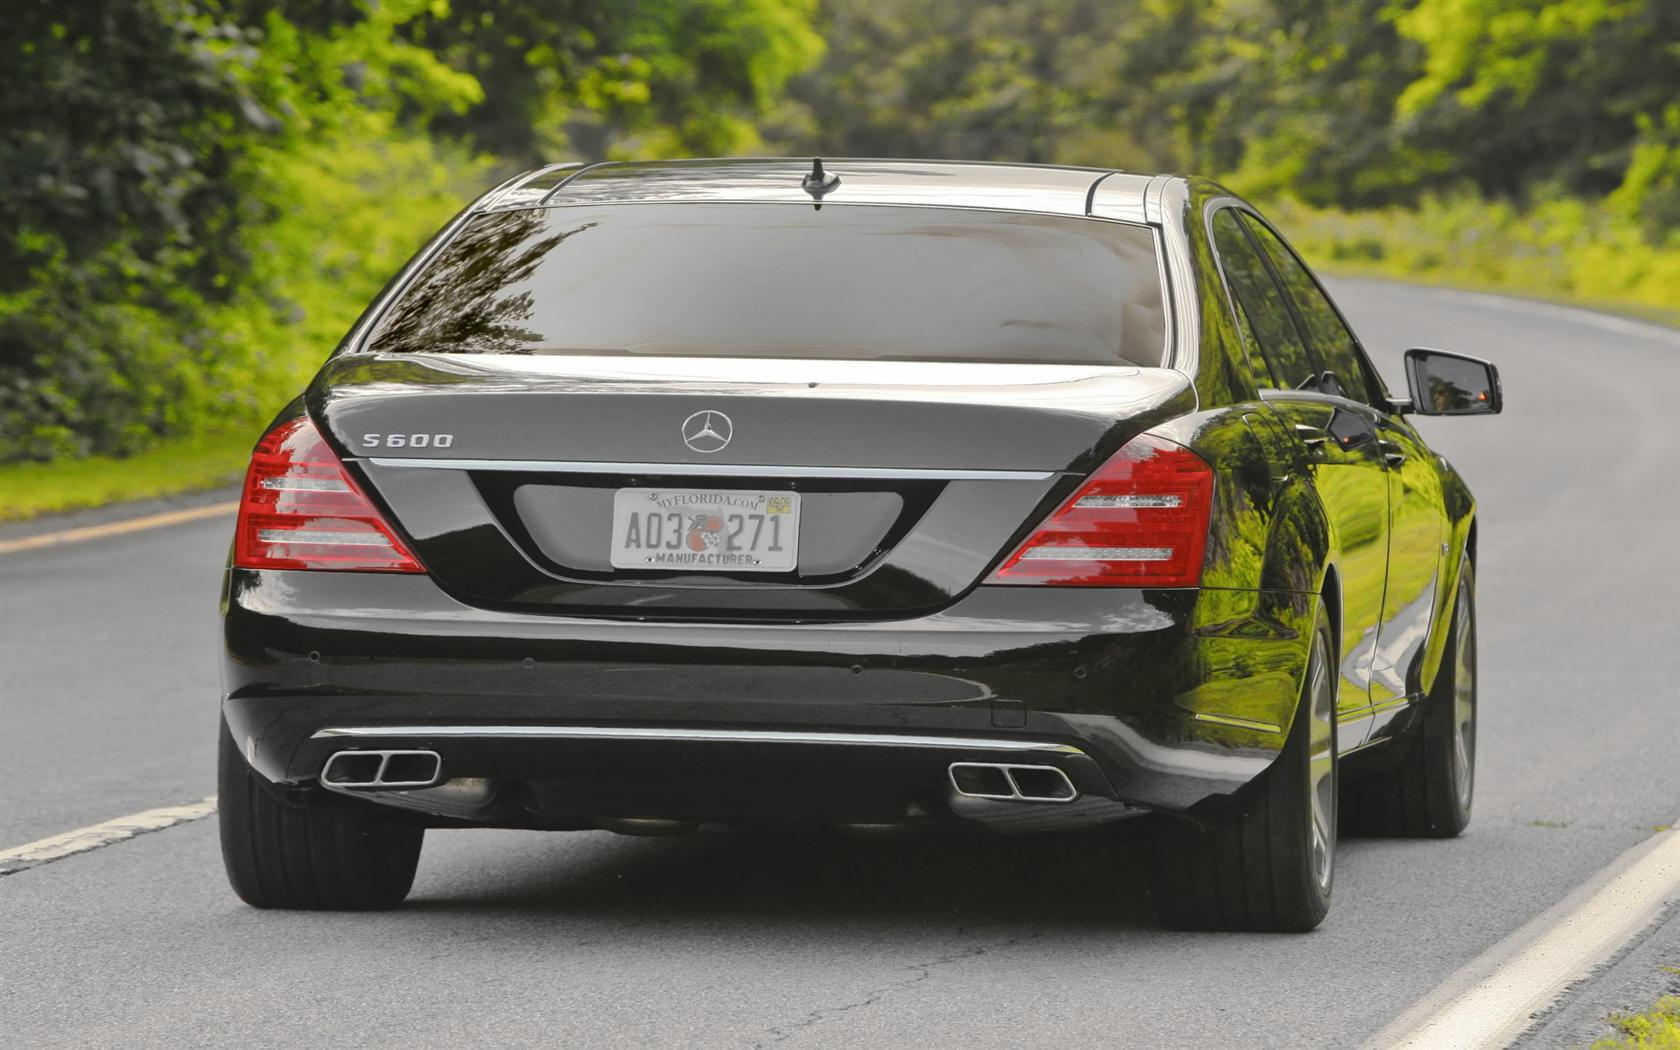 2010 mercedes benz s class image 15 for 2010 mercedes benz s500